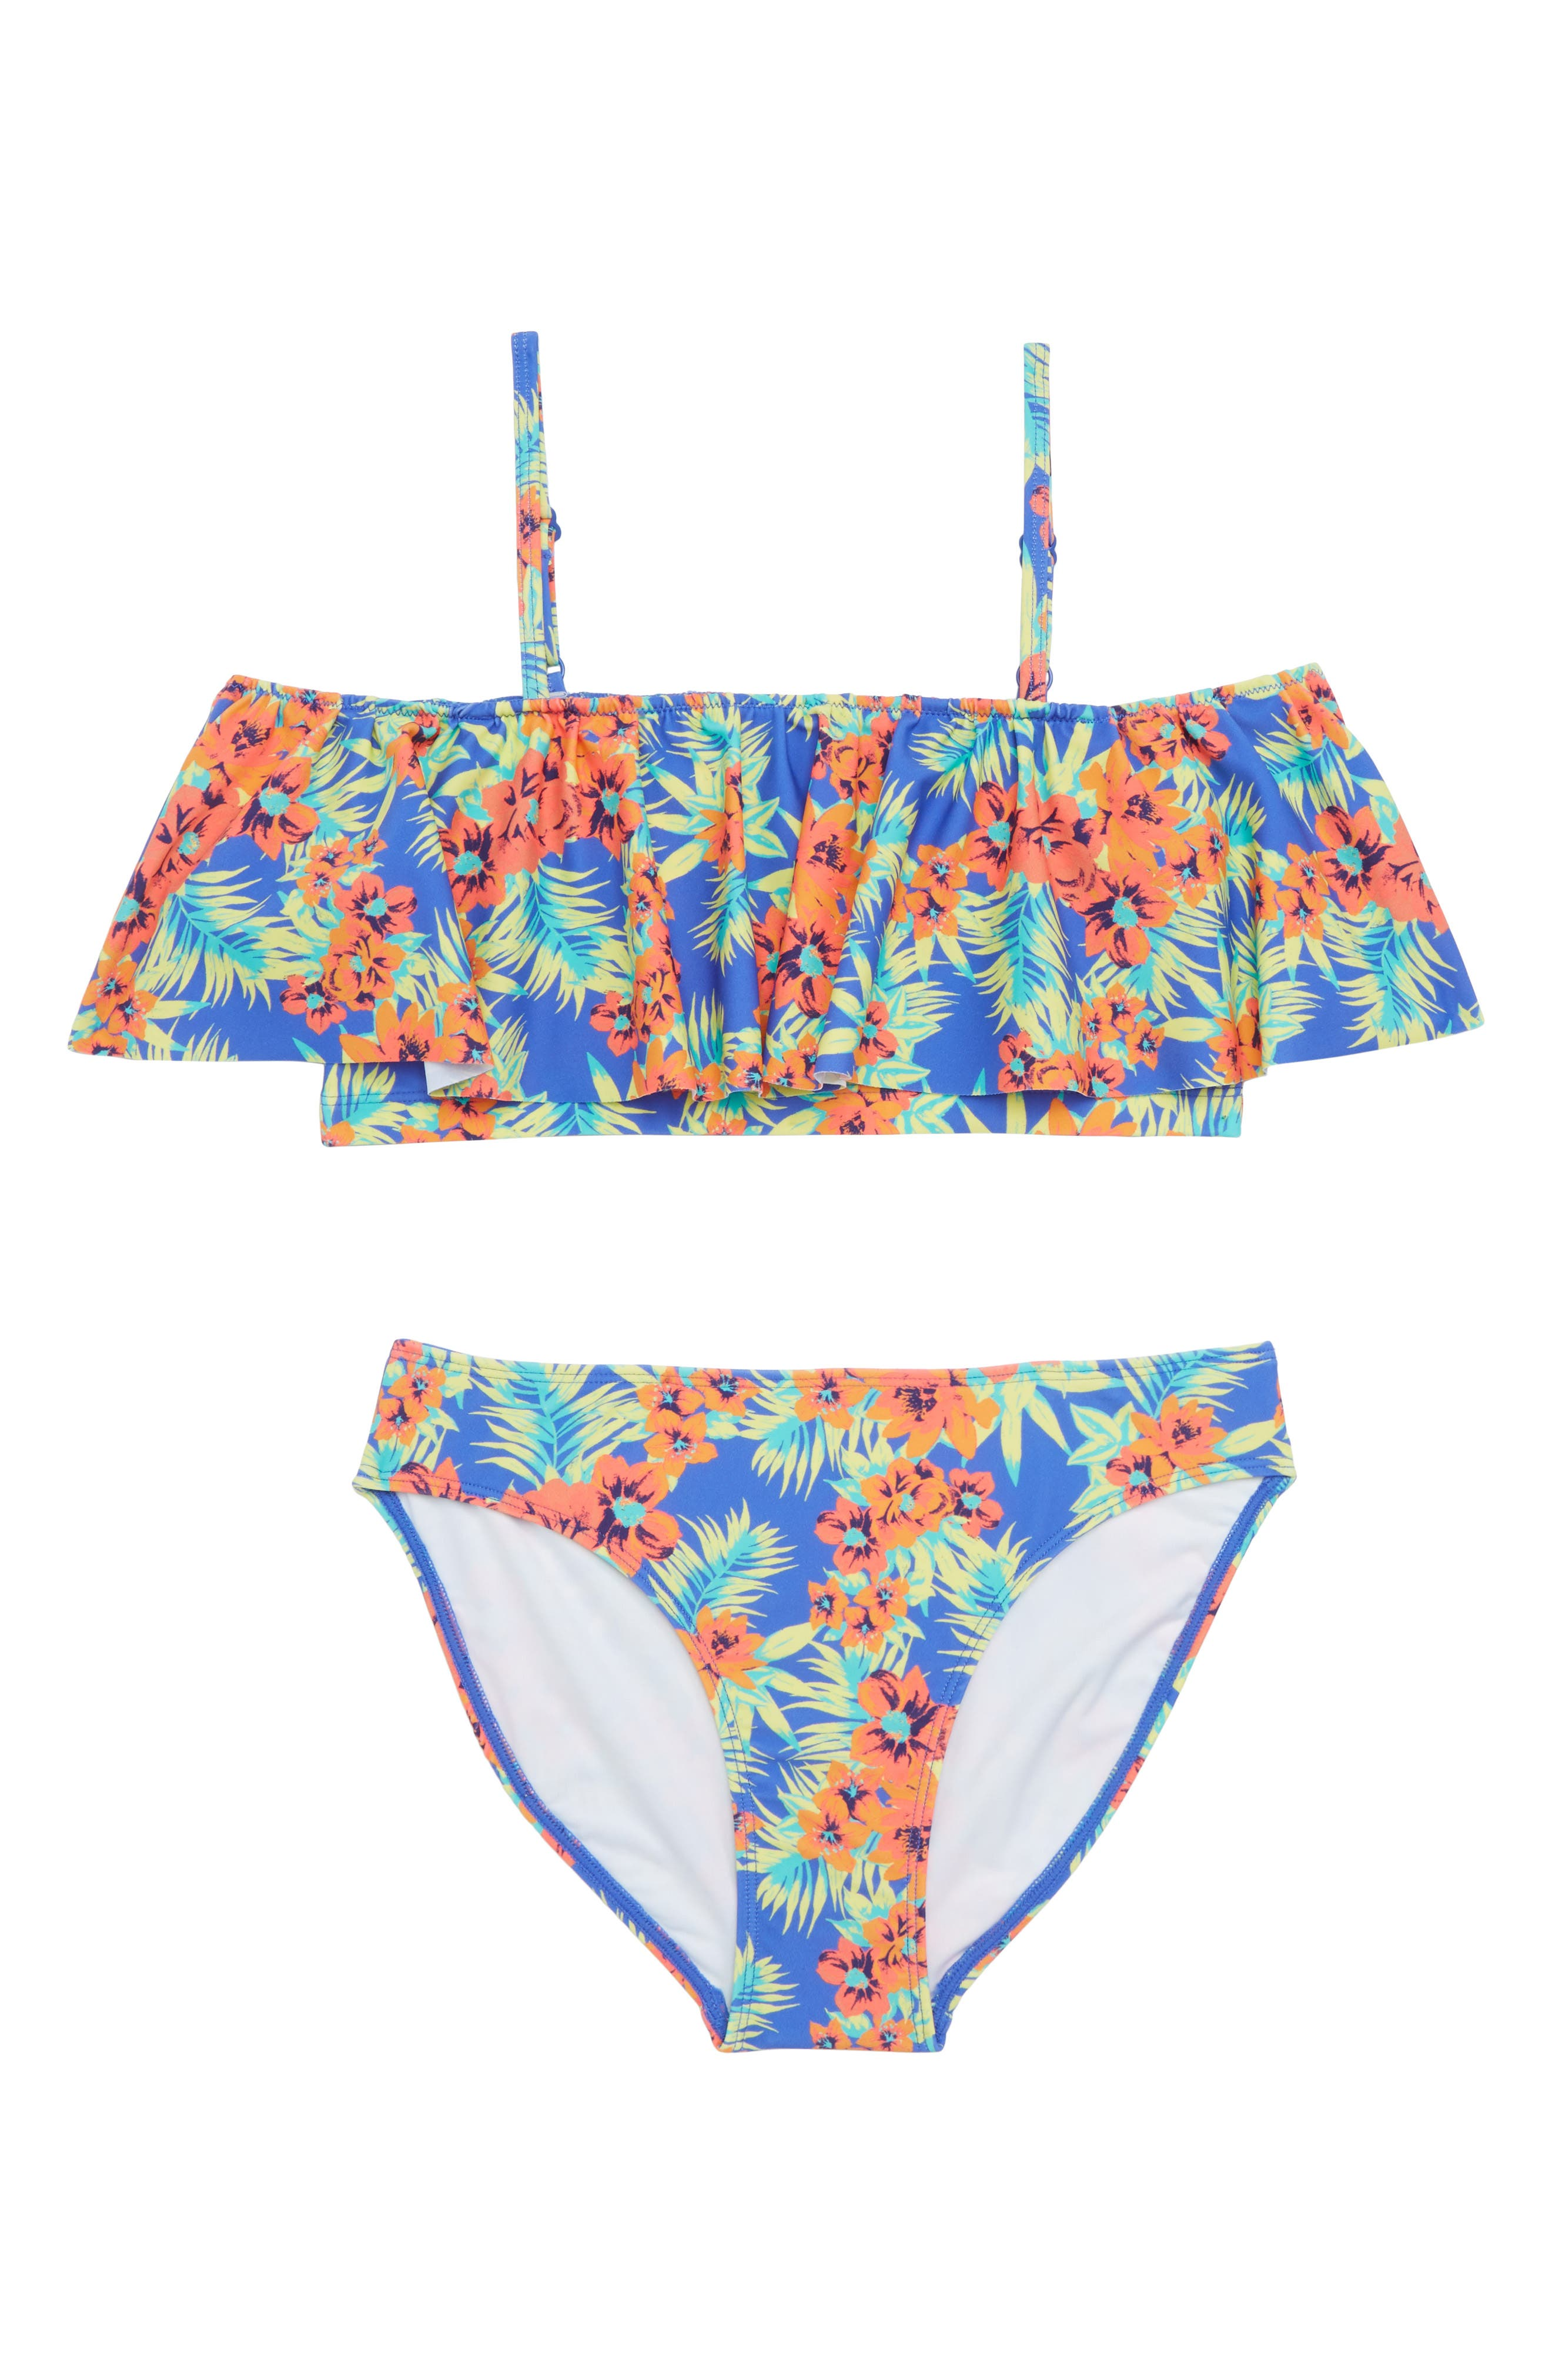 Floral Ruffle Two-Piece Swimsuit,                             Main thumbnail 1, color,                             Blue Amparo Tropical Floral